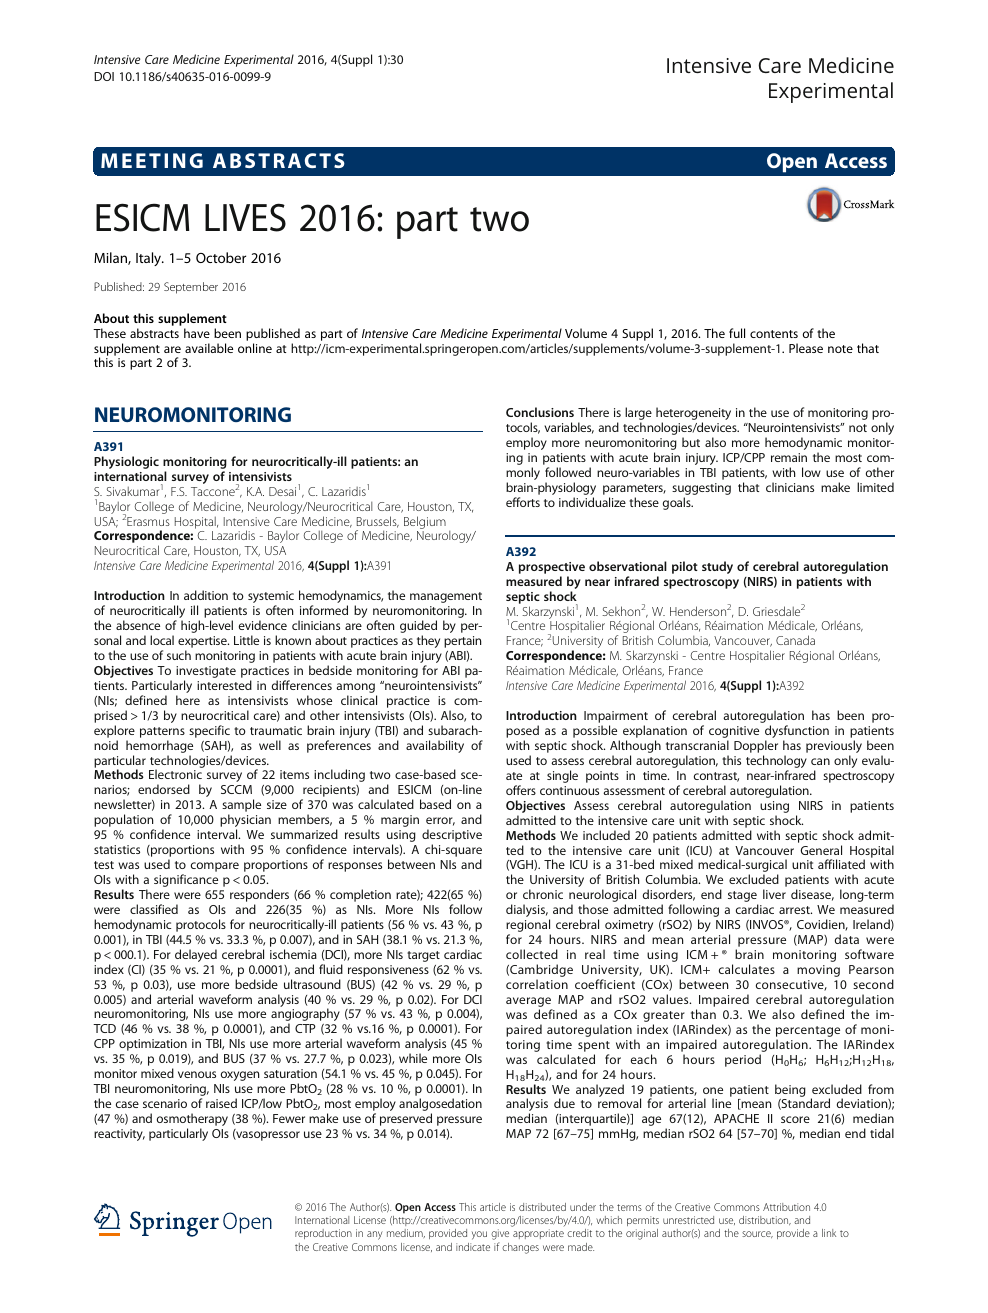 ESICM LIVES 2016 Part Two – Topic Of Research Paper In